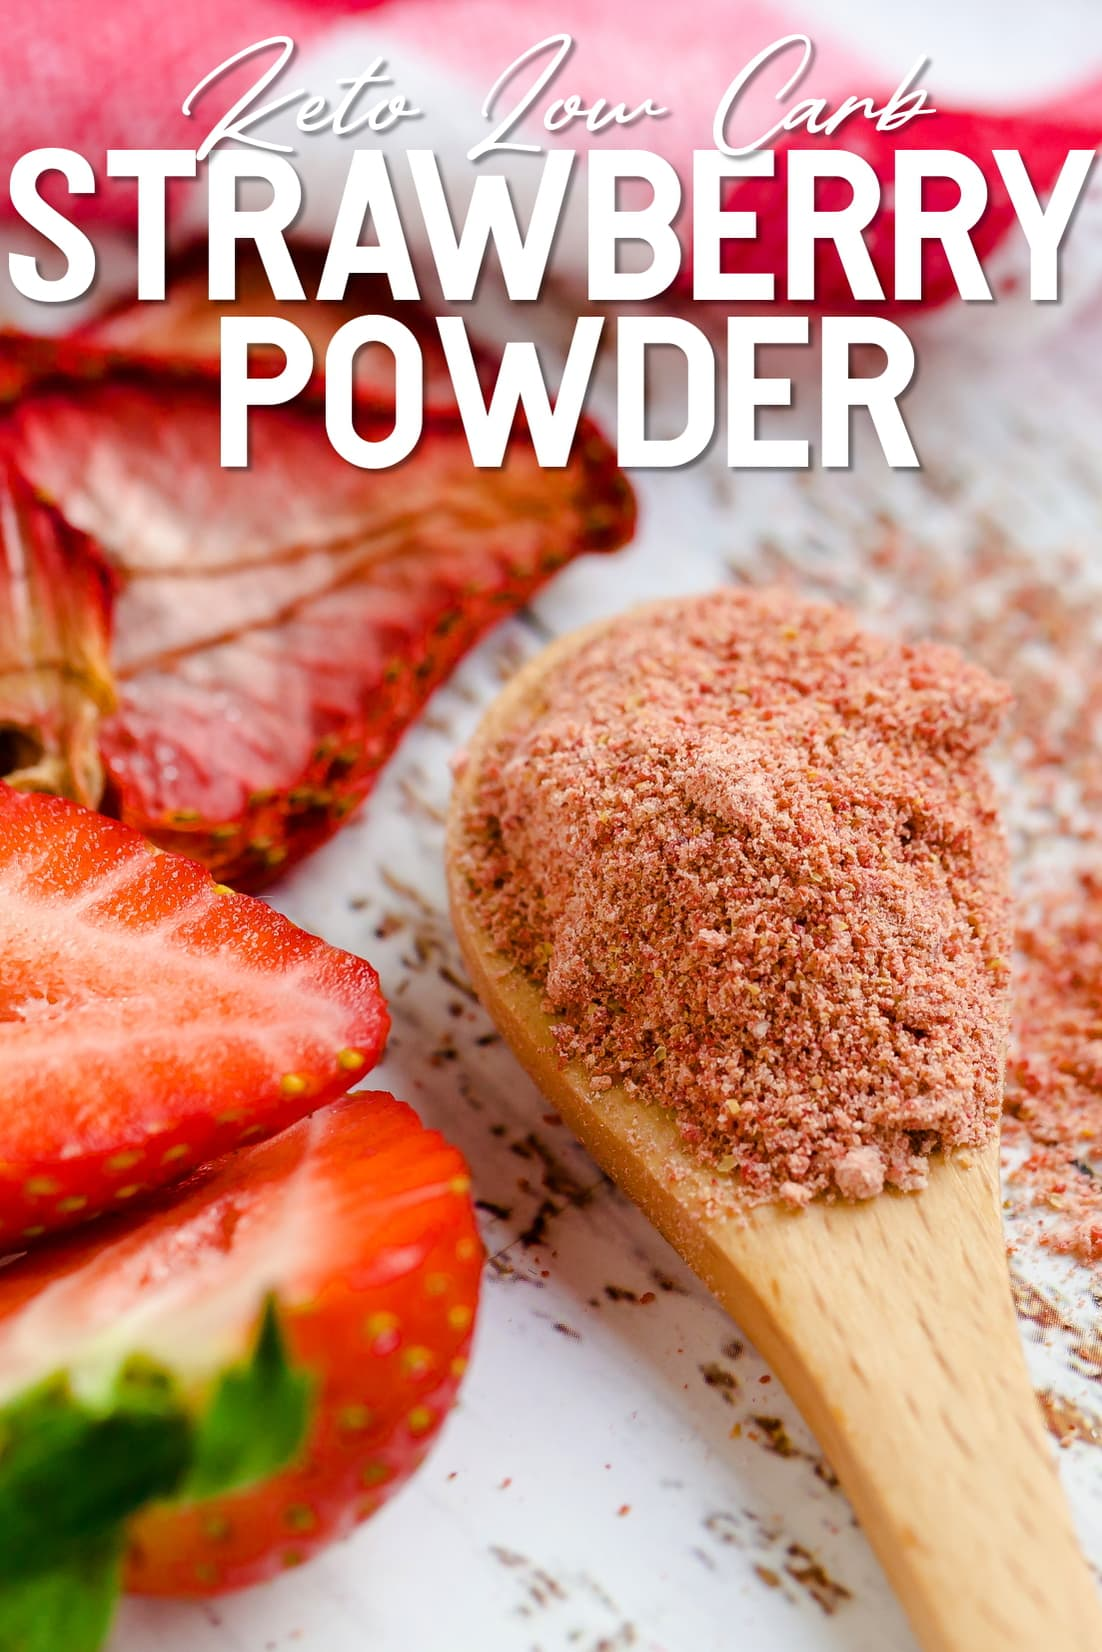 Keto Strawberry Powder in a wooden spoon